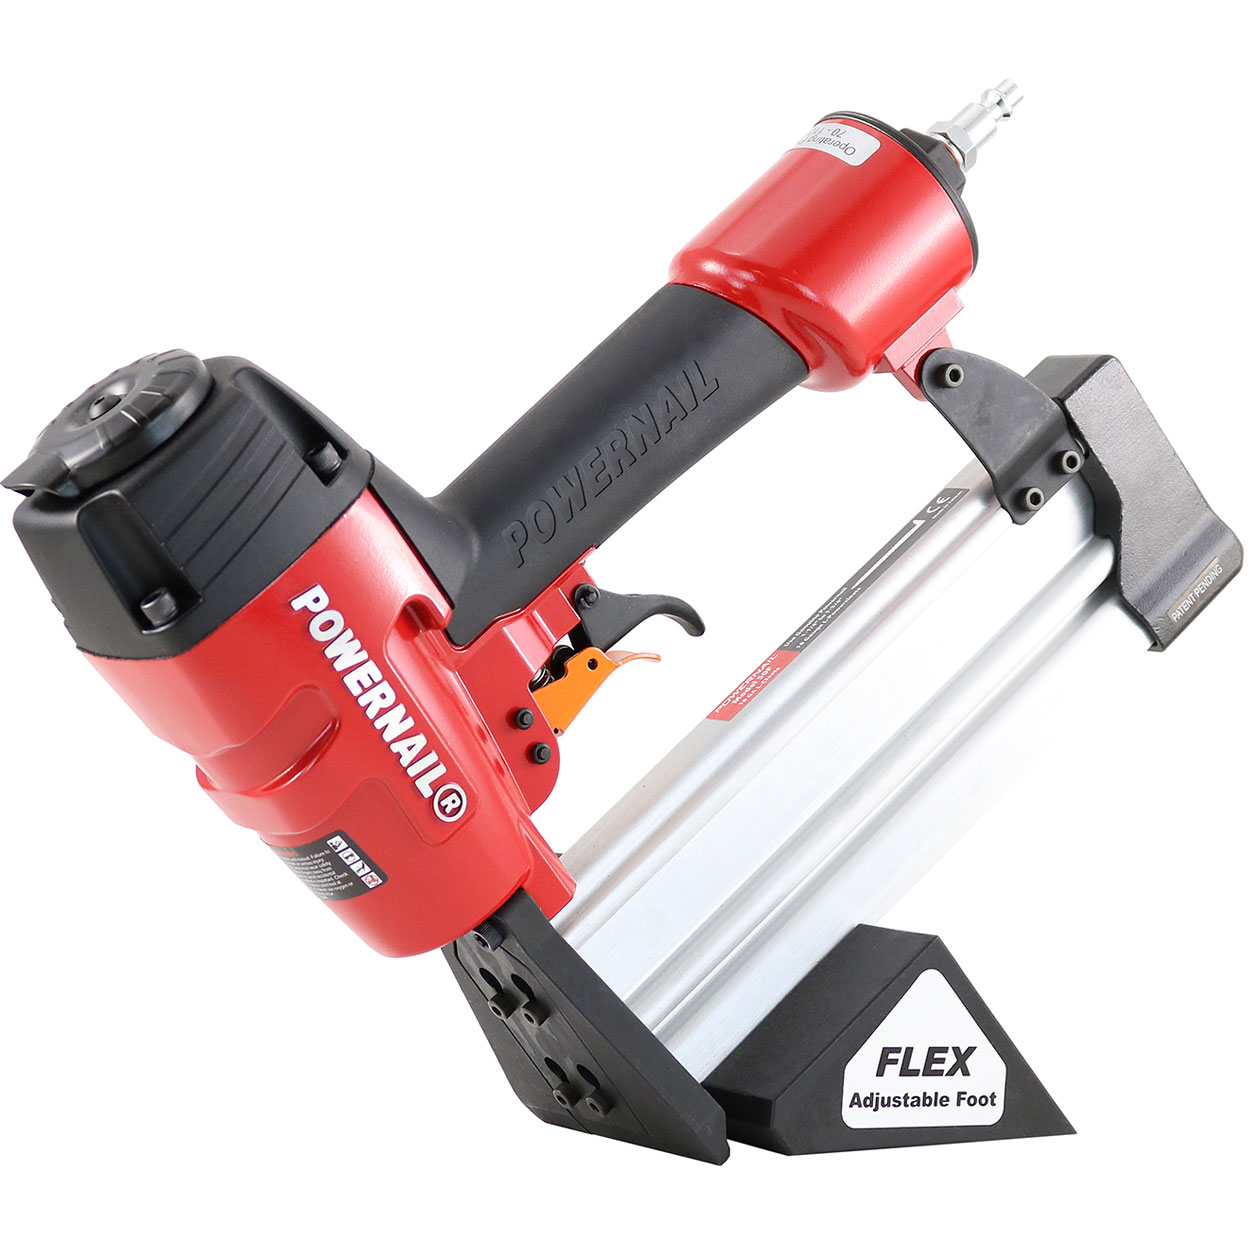 50F – Pneumatic 18-Gauge Flooring Nailer